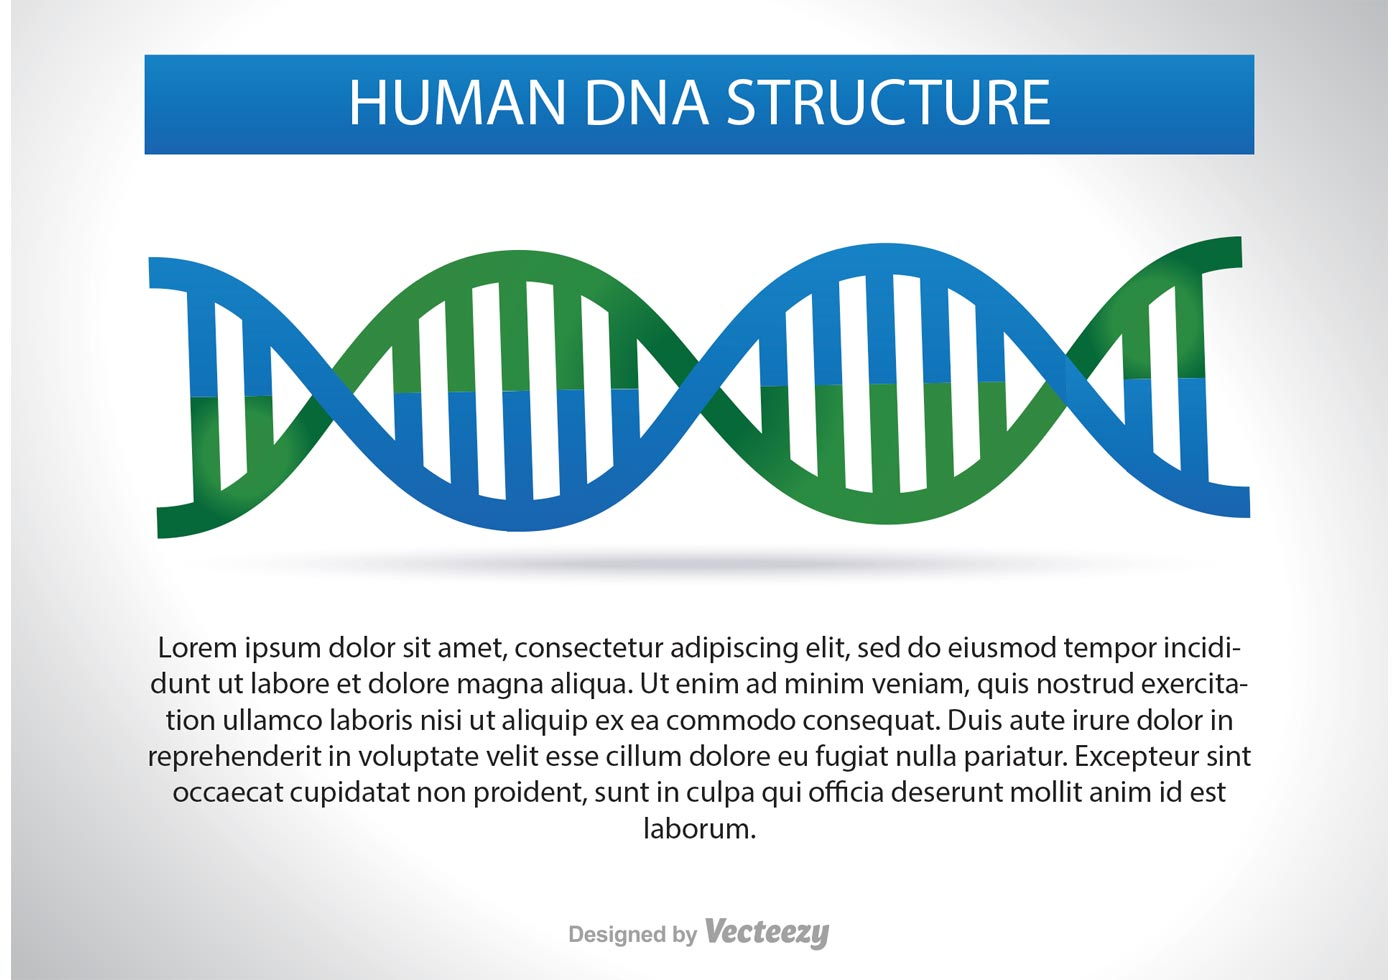 dna structure illustration download free vector art Funny Weight Lifting Clip Art Funny Weight Lifting Clip Art